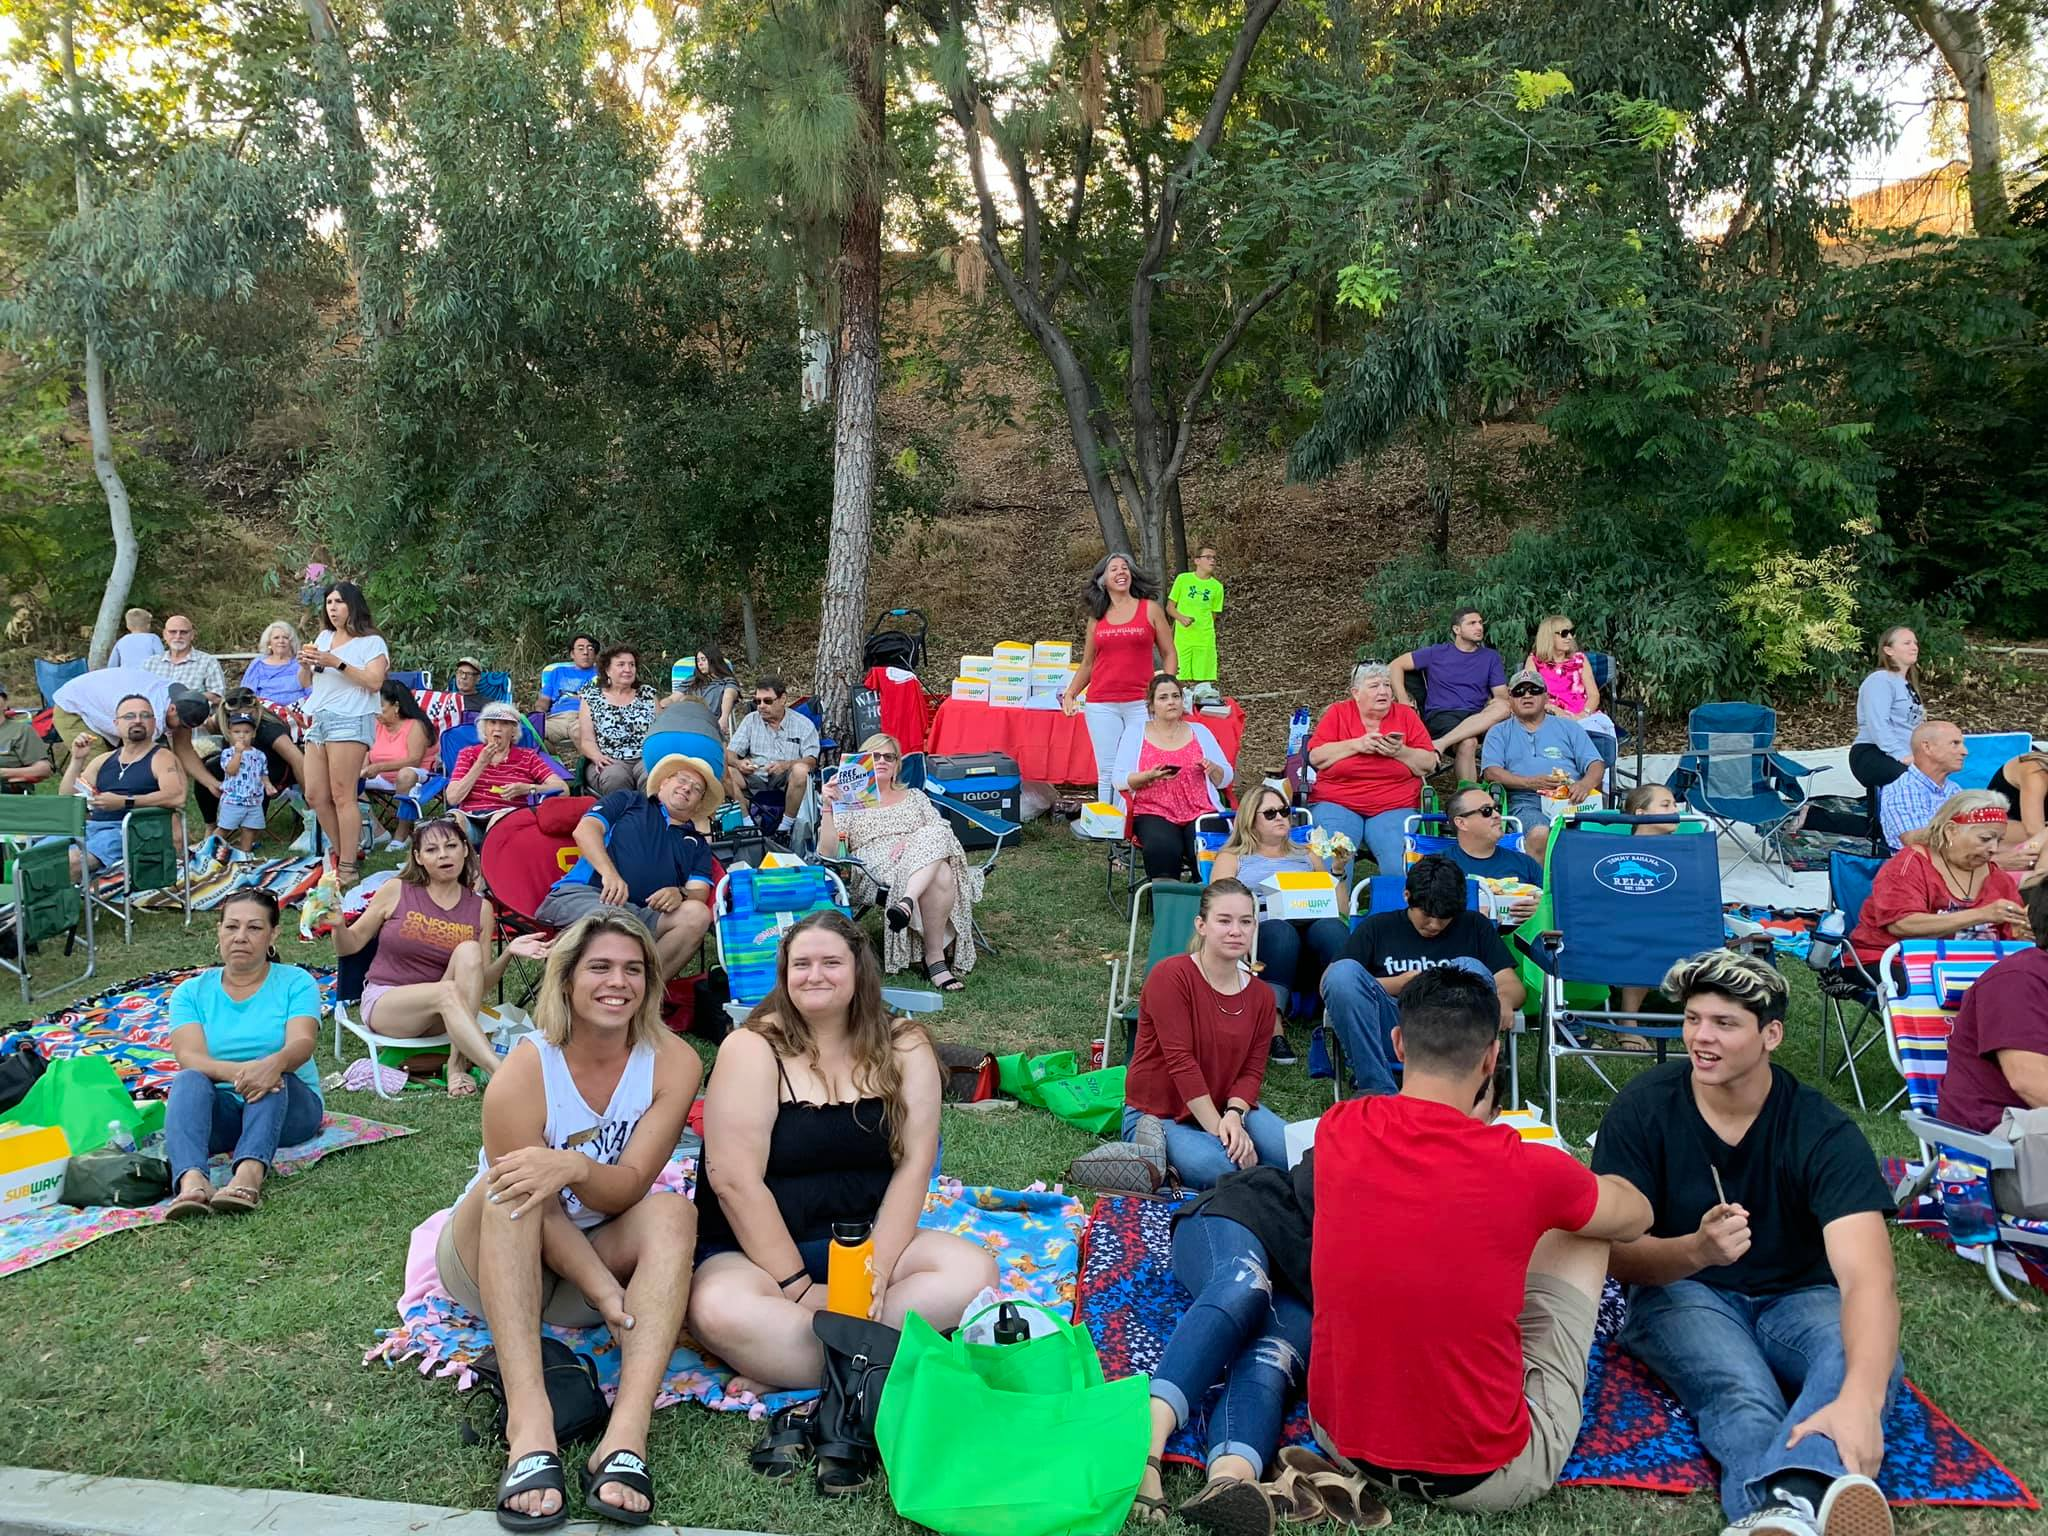 Enjoying the sweet tunes of The Answer at La Verne Heritage Park.